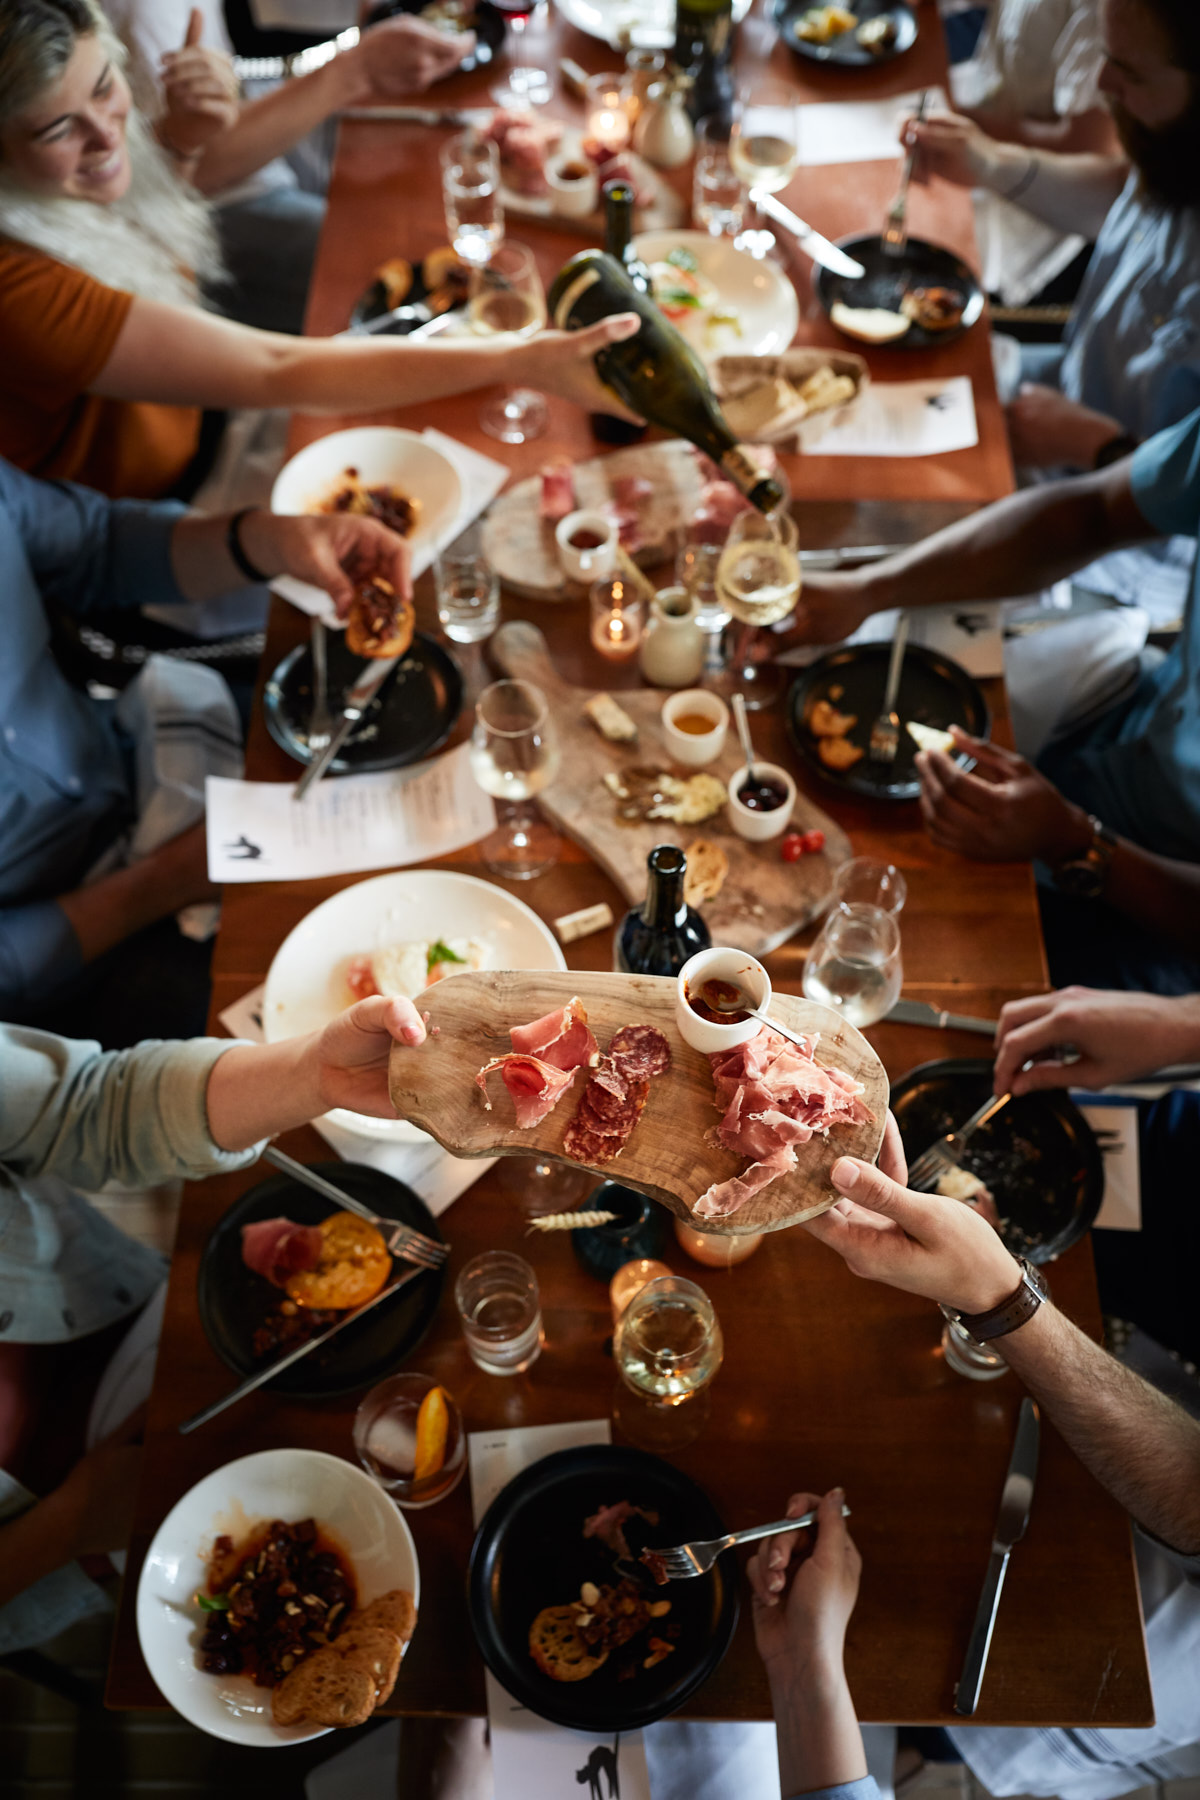 Jody Horton catches the festivities from above: a table full of food, wine, and people